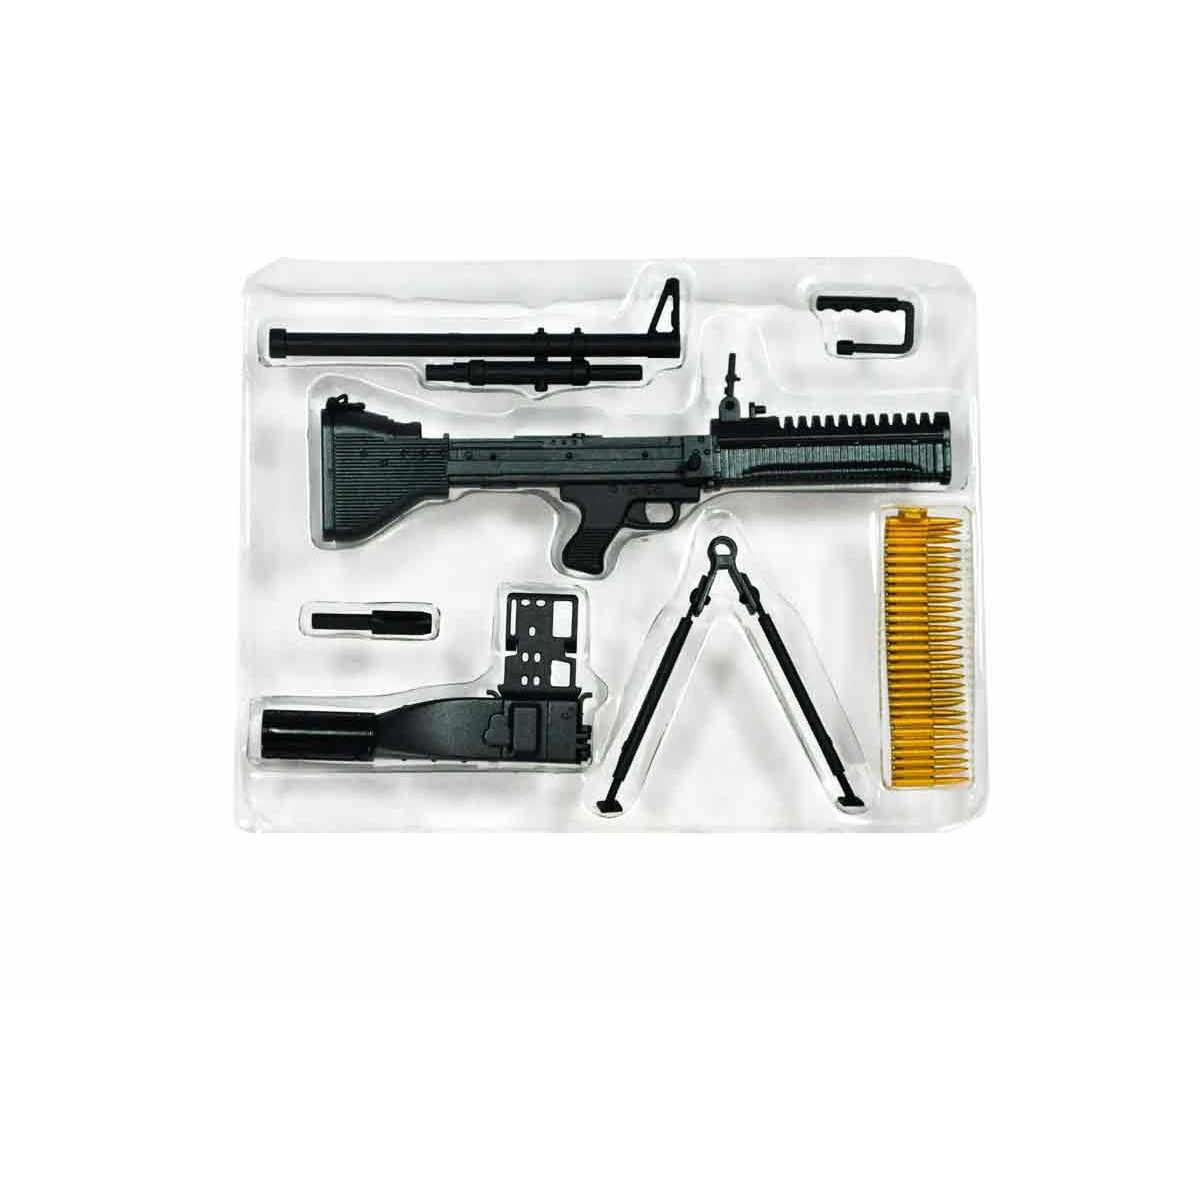 Miniatura Decorativa Metralhadora M60 Arsenal Guns